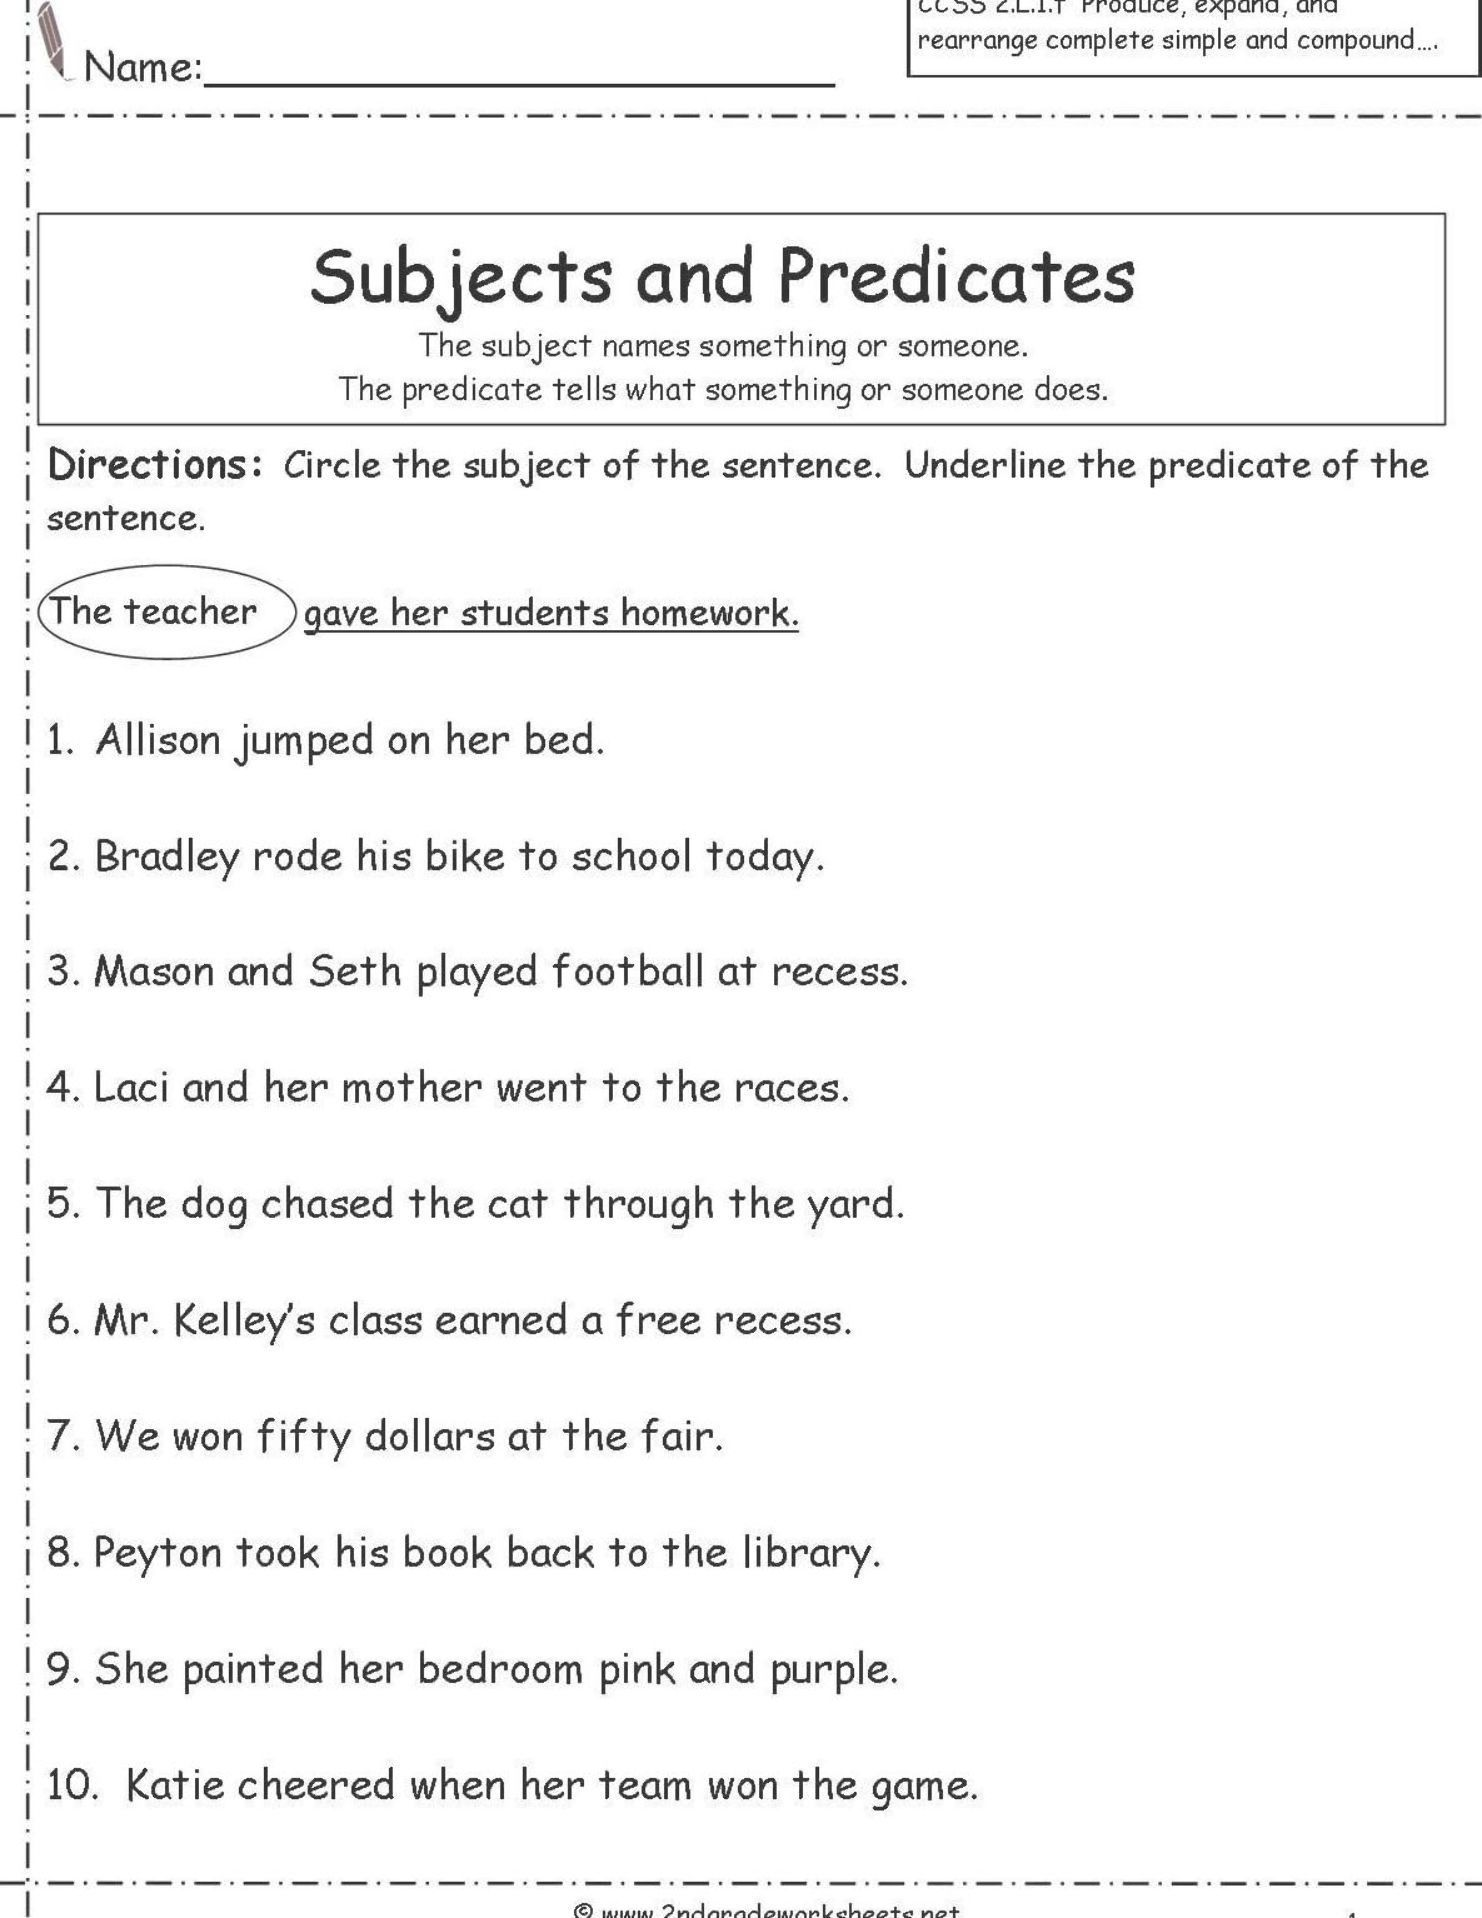 Subject And Predicate Worksheets For Second Grade In 2020 Subject And Predicate Worksheets Subject And Predicate Predicates